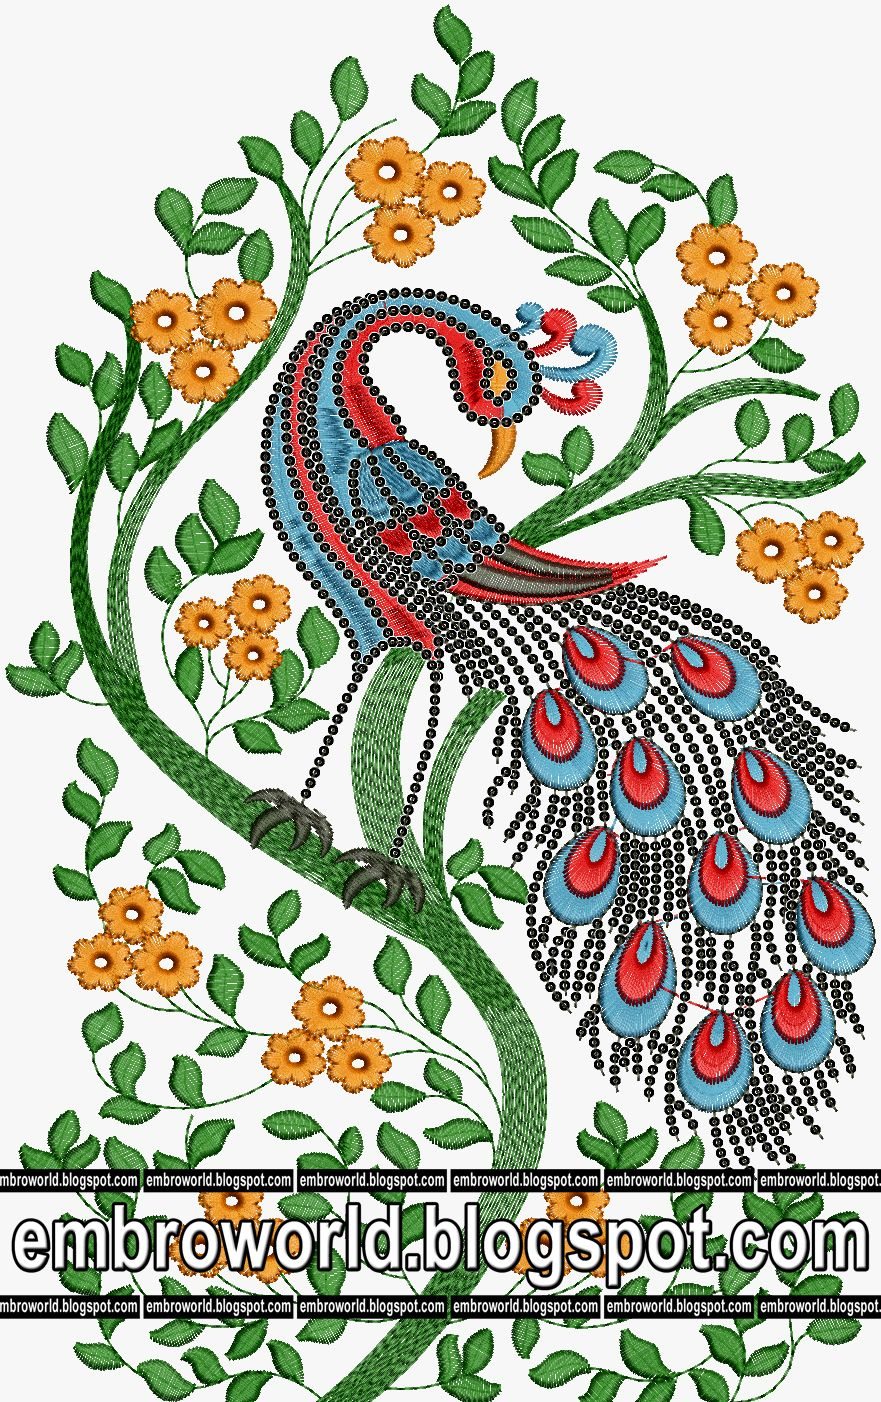 Pin by shantel palmer on tattoo ideas pinterest tattoo hi friends i am attaching herewith some nice peacock designs from my collection which you could use for embroidery bankloansurffo Gallery